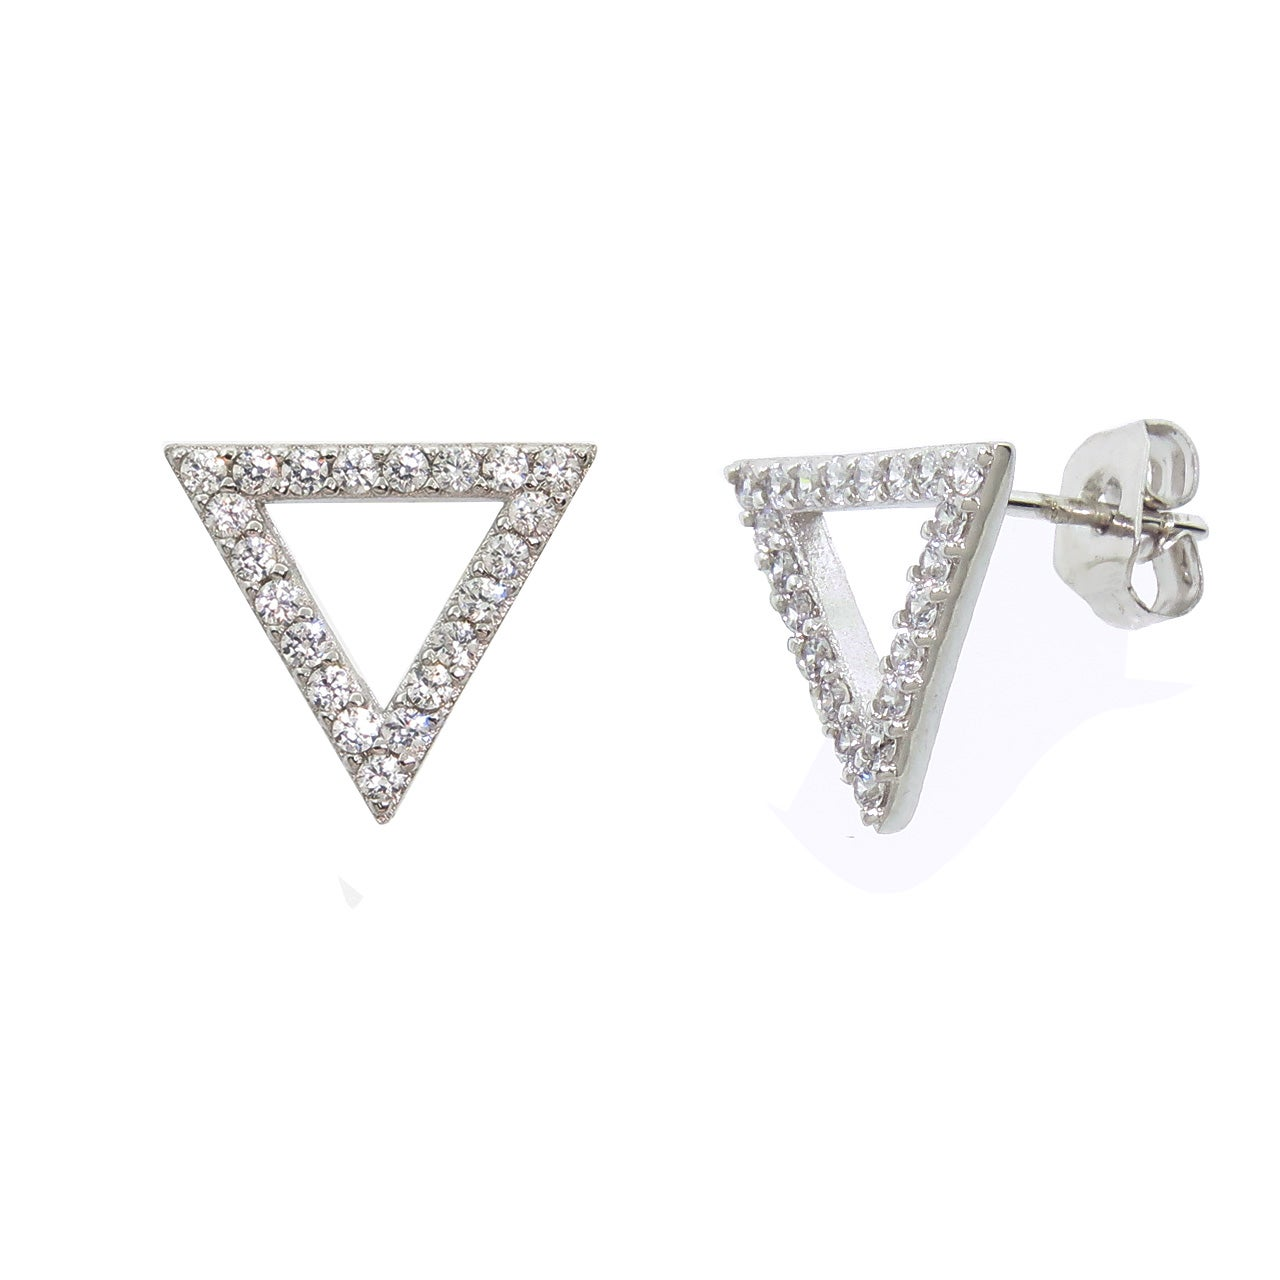 Eternally Haute Pave Triangle Stud Earrings